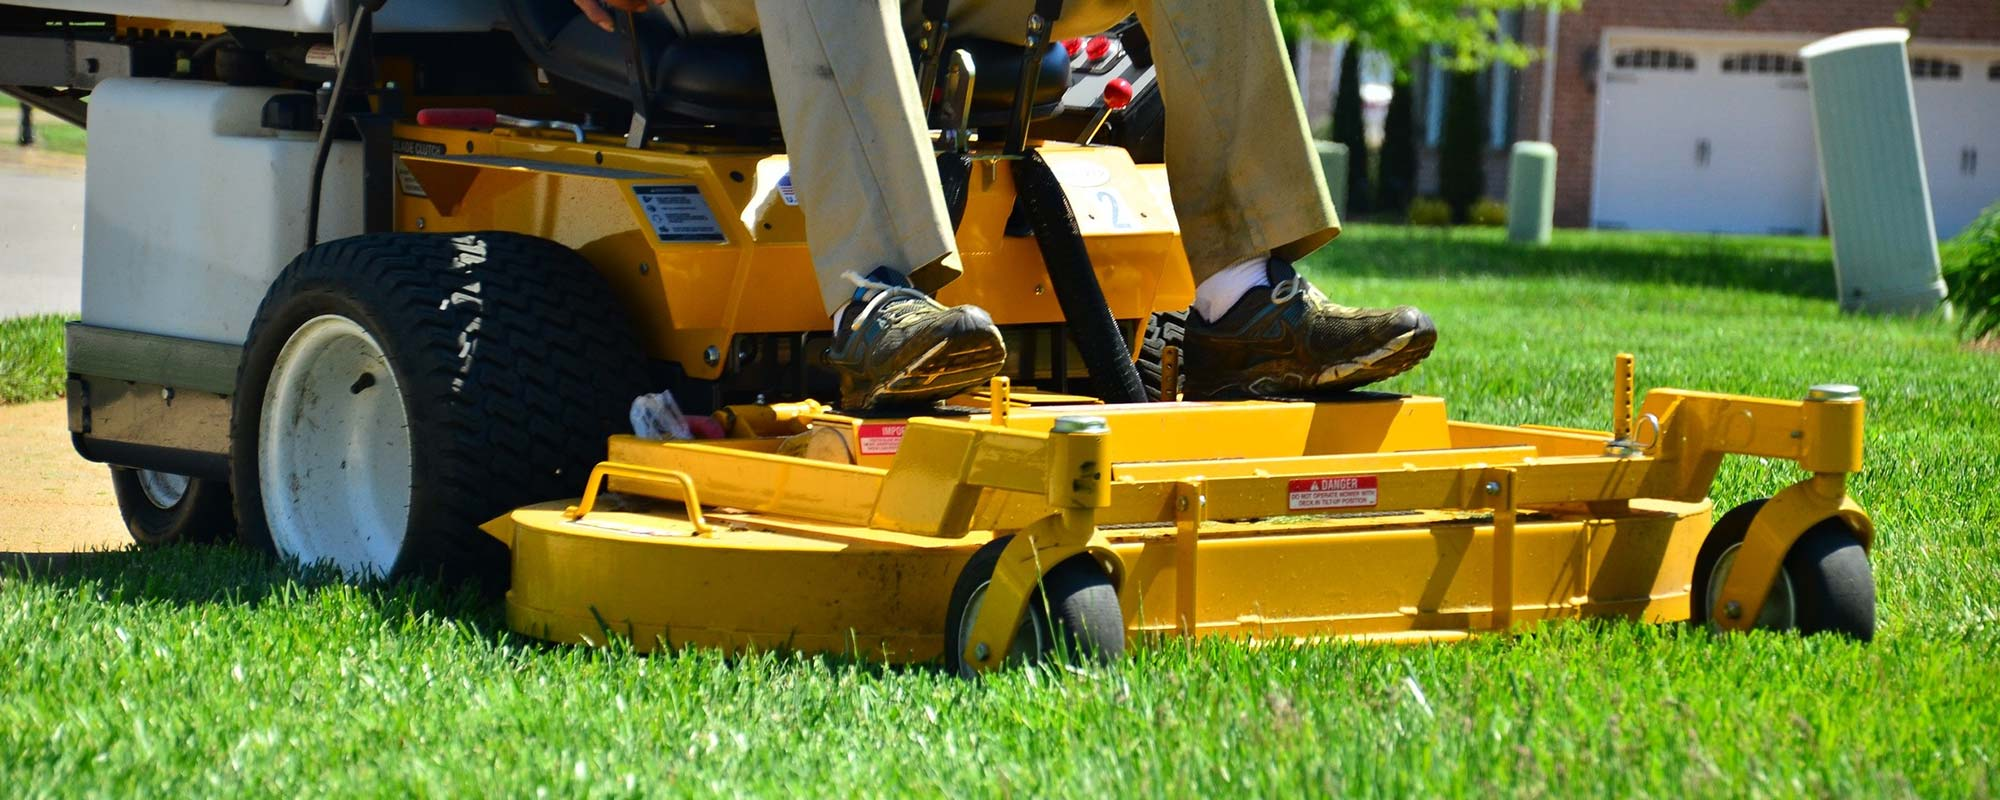 VIP Lawn Mowing Franchise For Sale